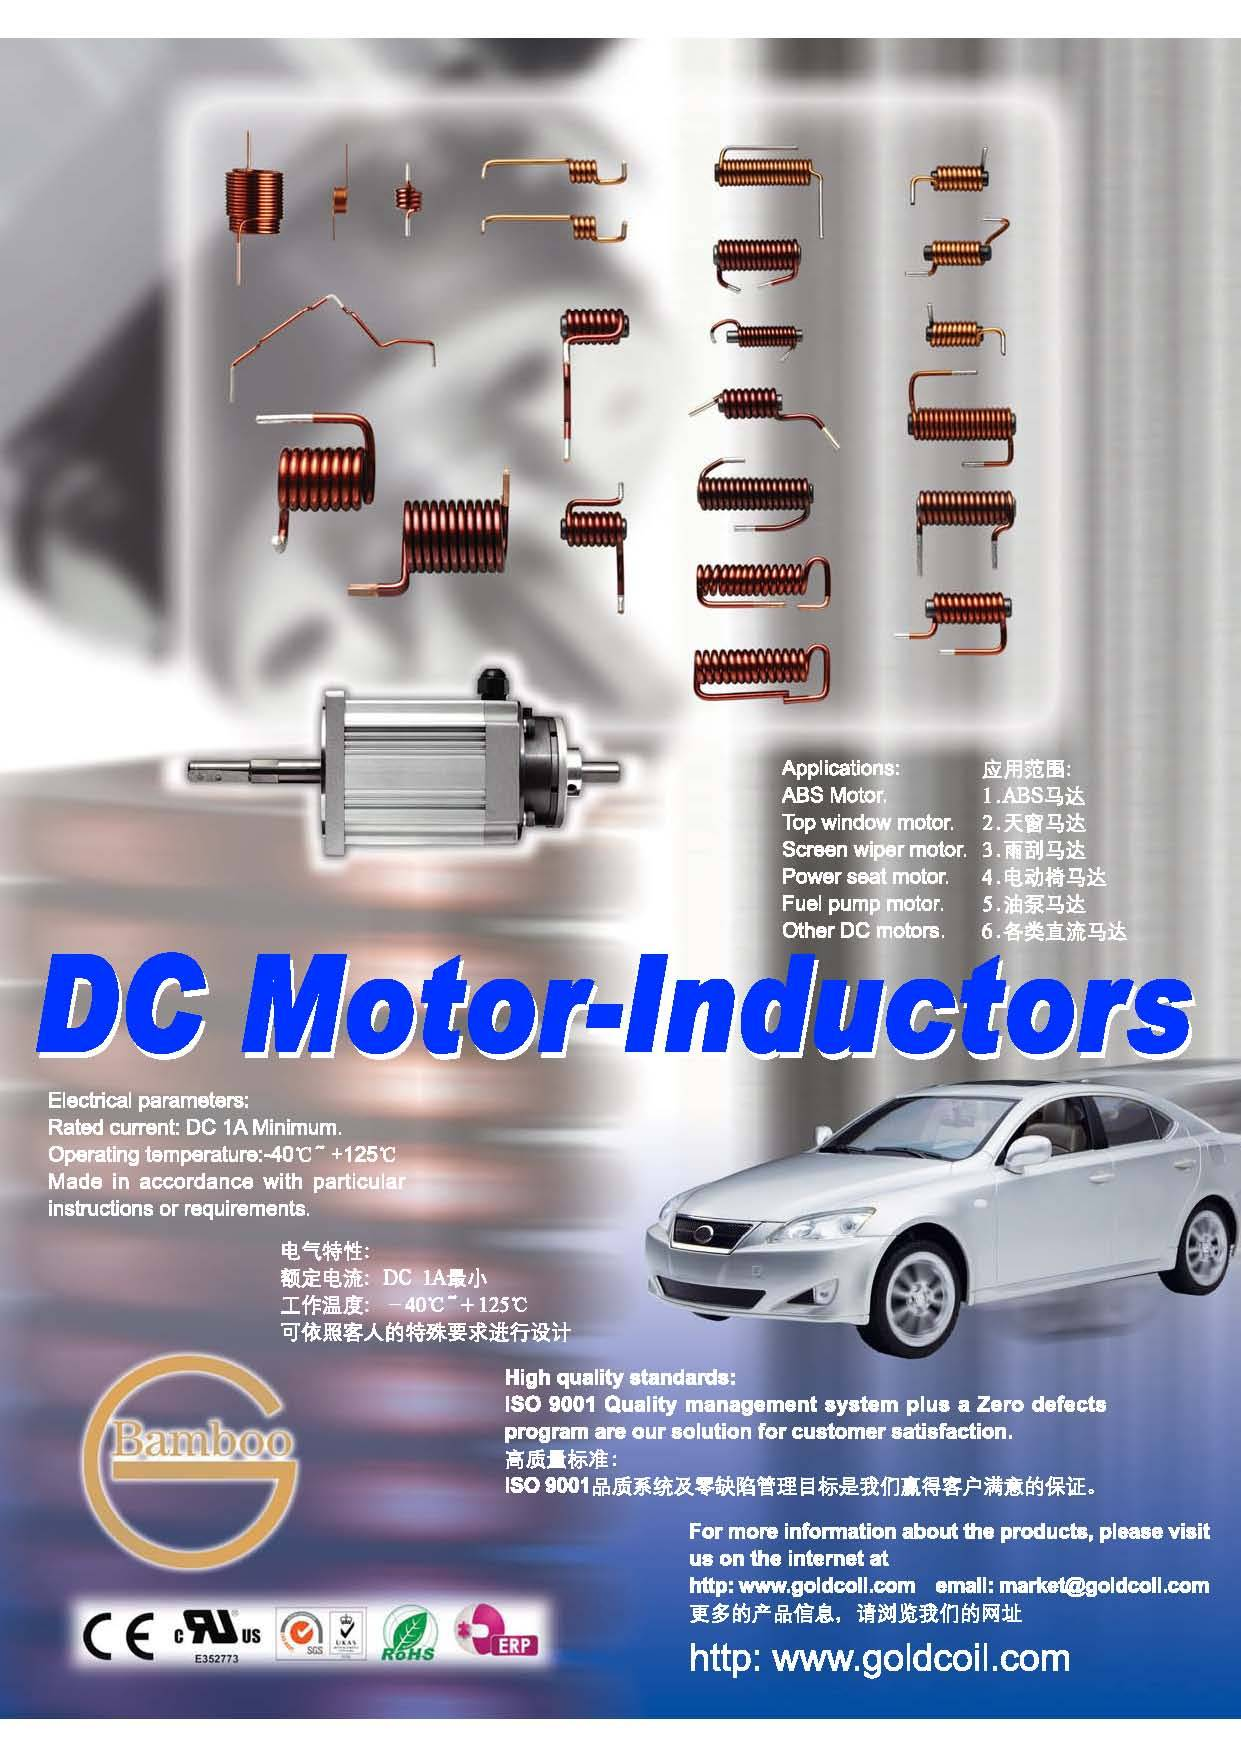 DC motor-inductor